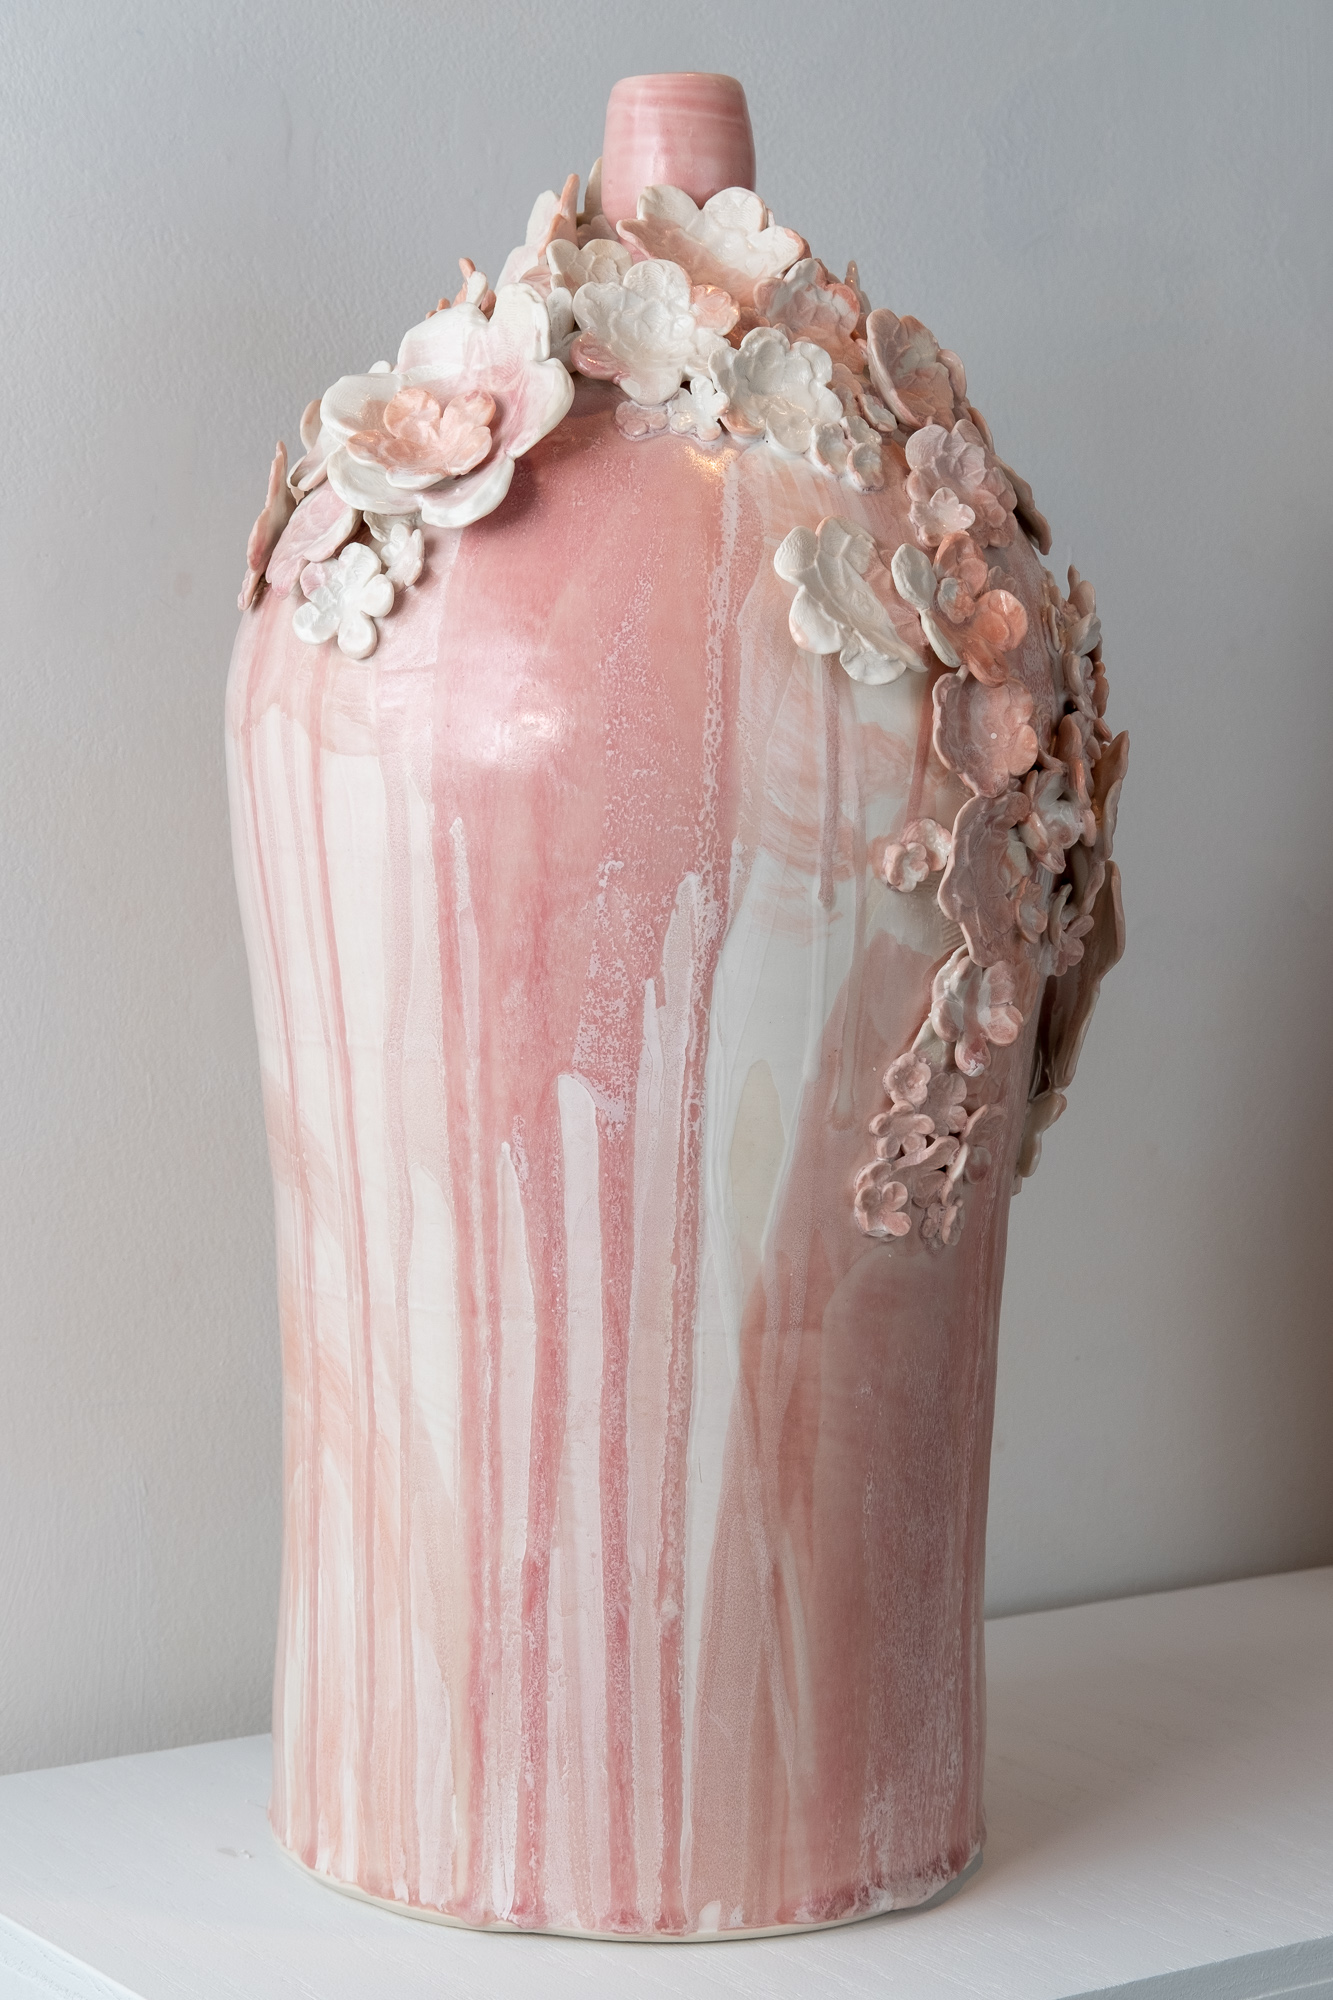 Hanazume (Packed Florals) Vase II   Wheel-thrown and handbuilt porcelain with press-molded sprigs from three-dimensional model prints, glaze  21 x 11 x 11 inches VZI 004G